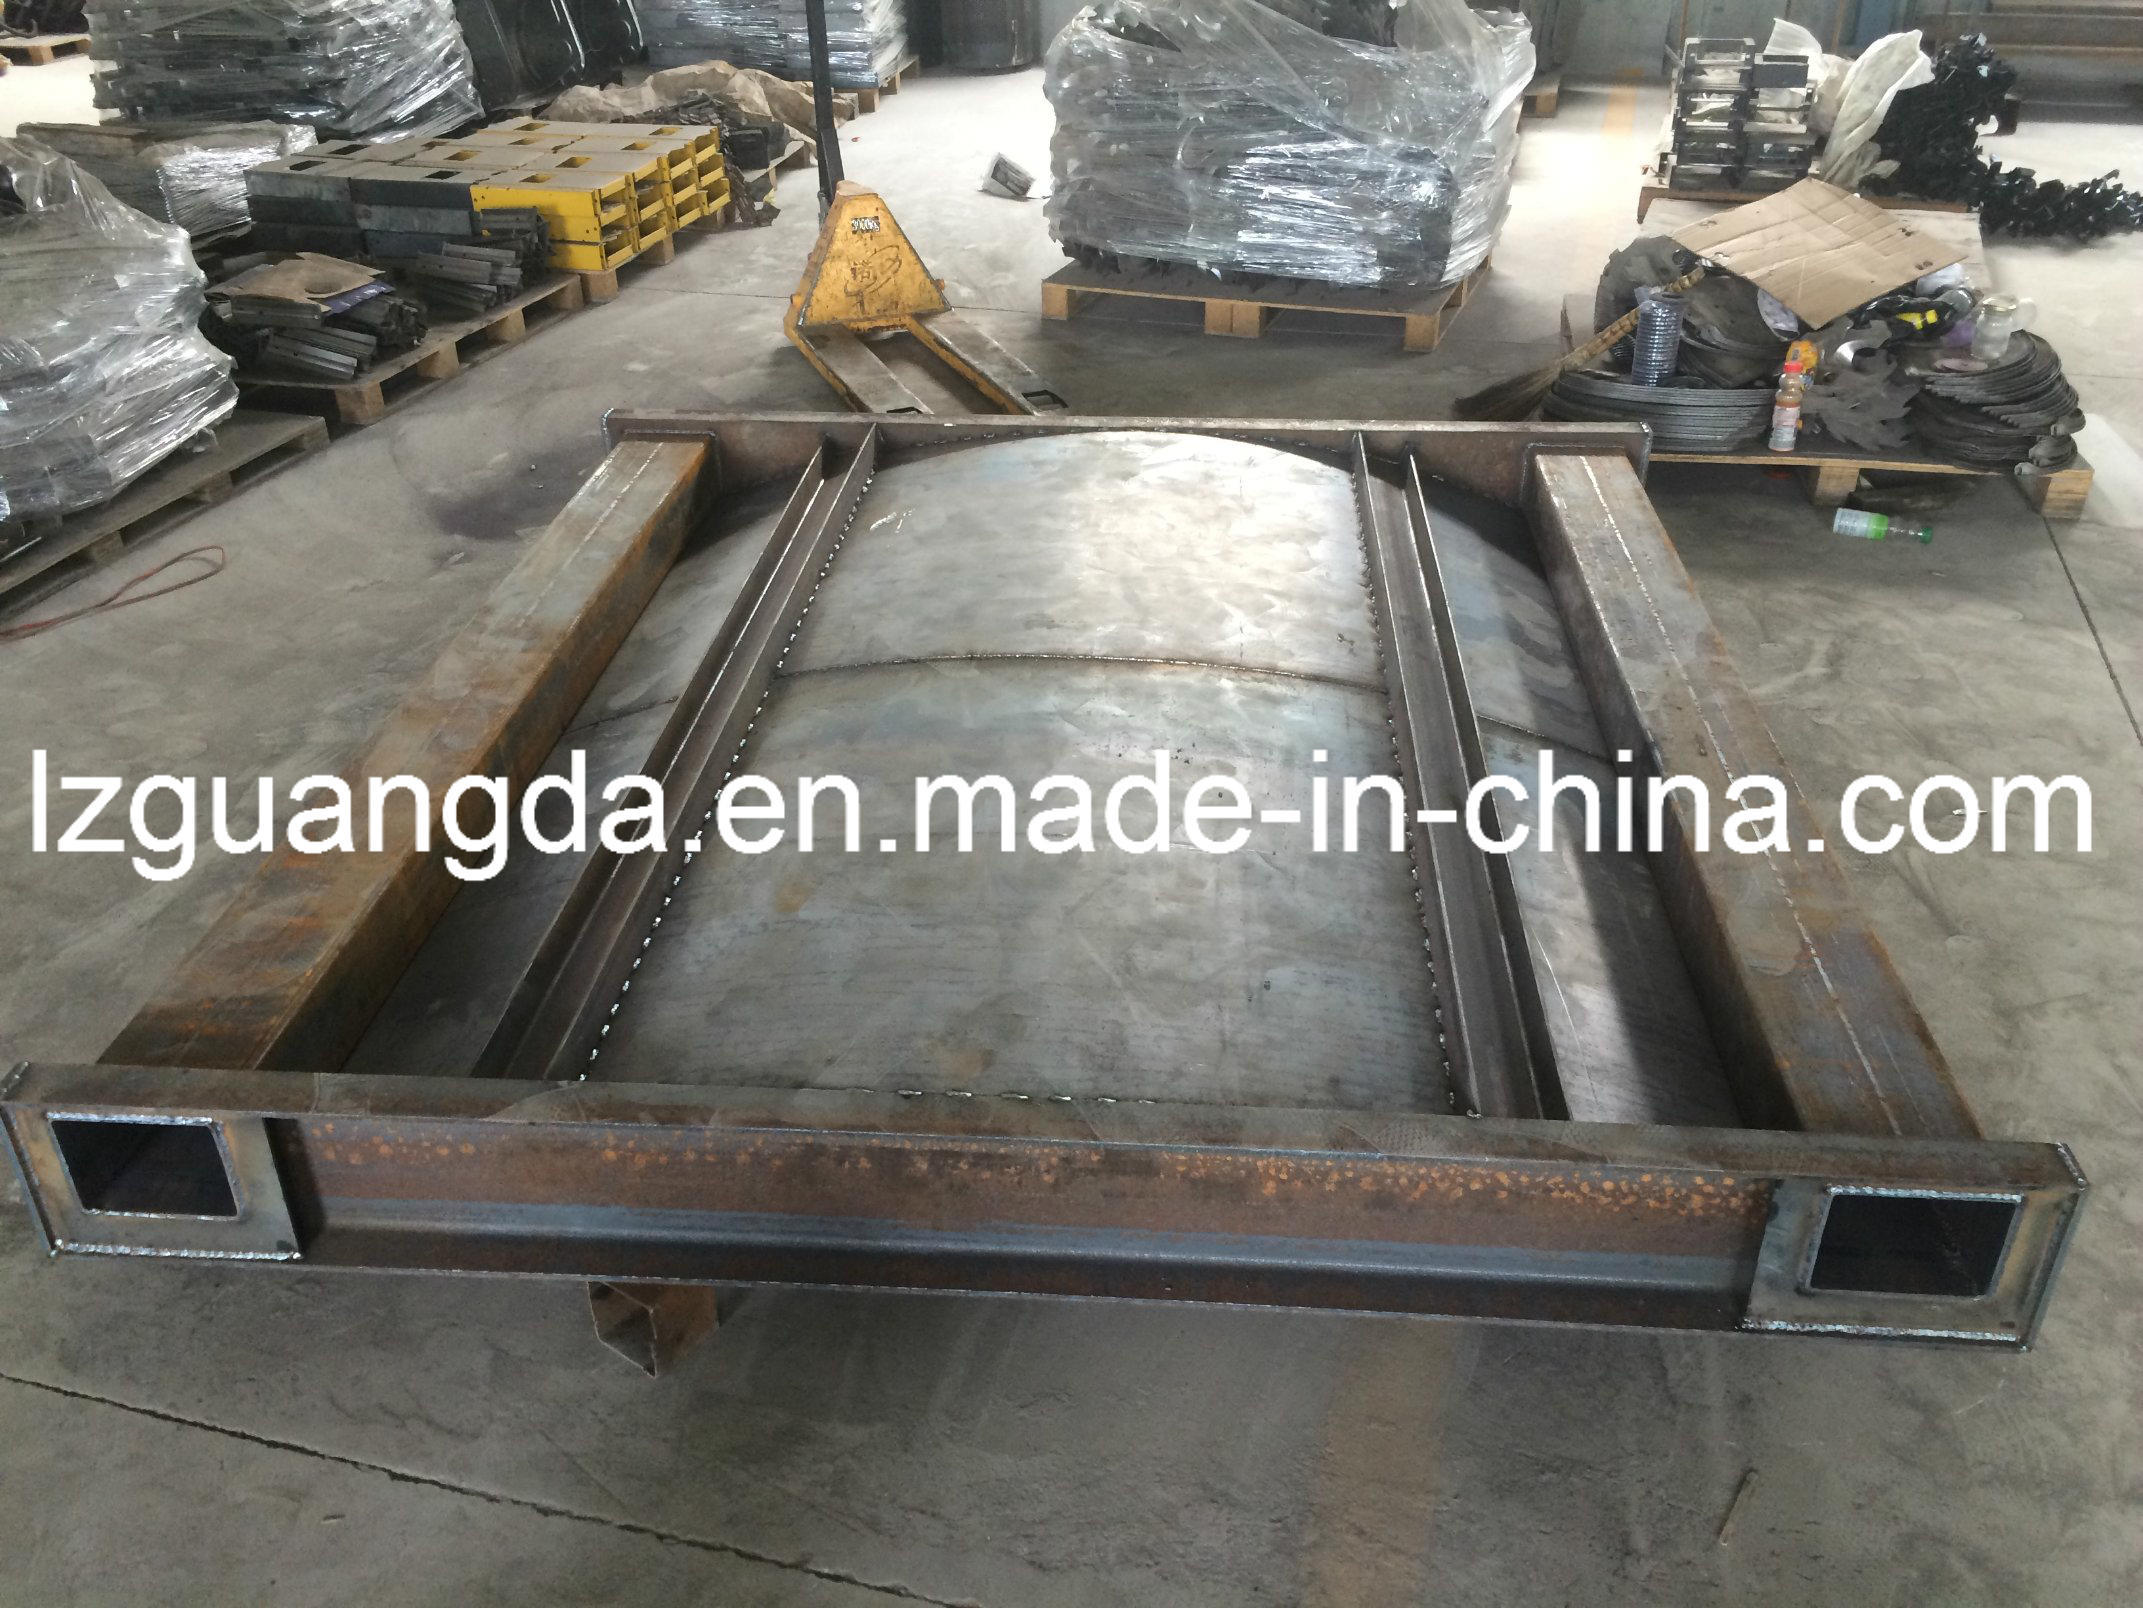 Low Price Stainless Steel Sheet Metal Stamping Part/Stainless Steel Parts with Welding